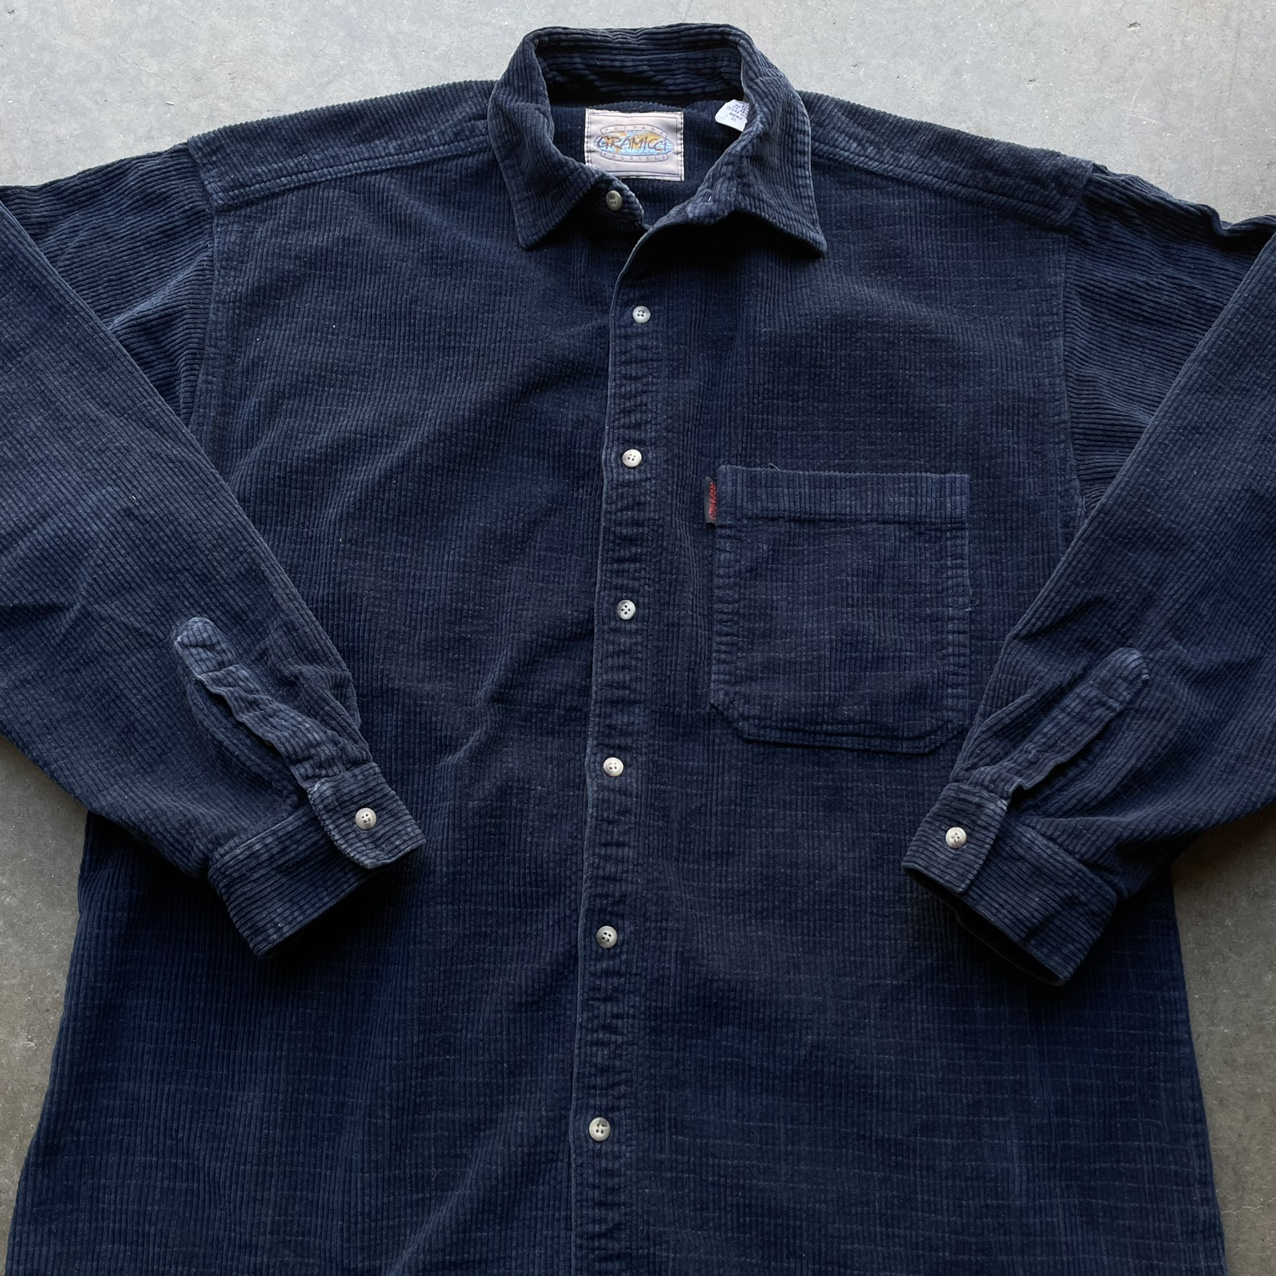 Product Image 1 - Vintage gramicci navy button up